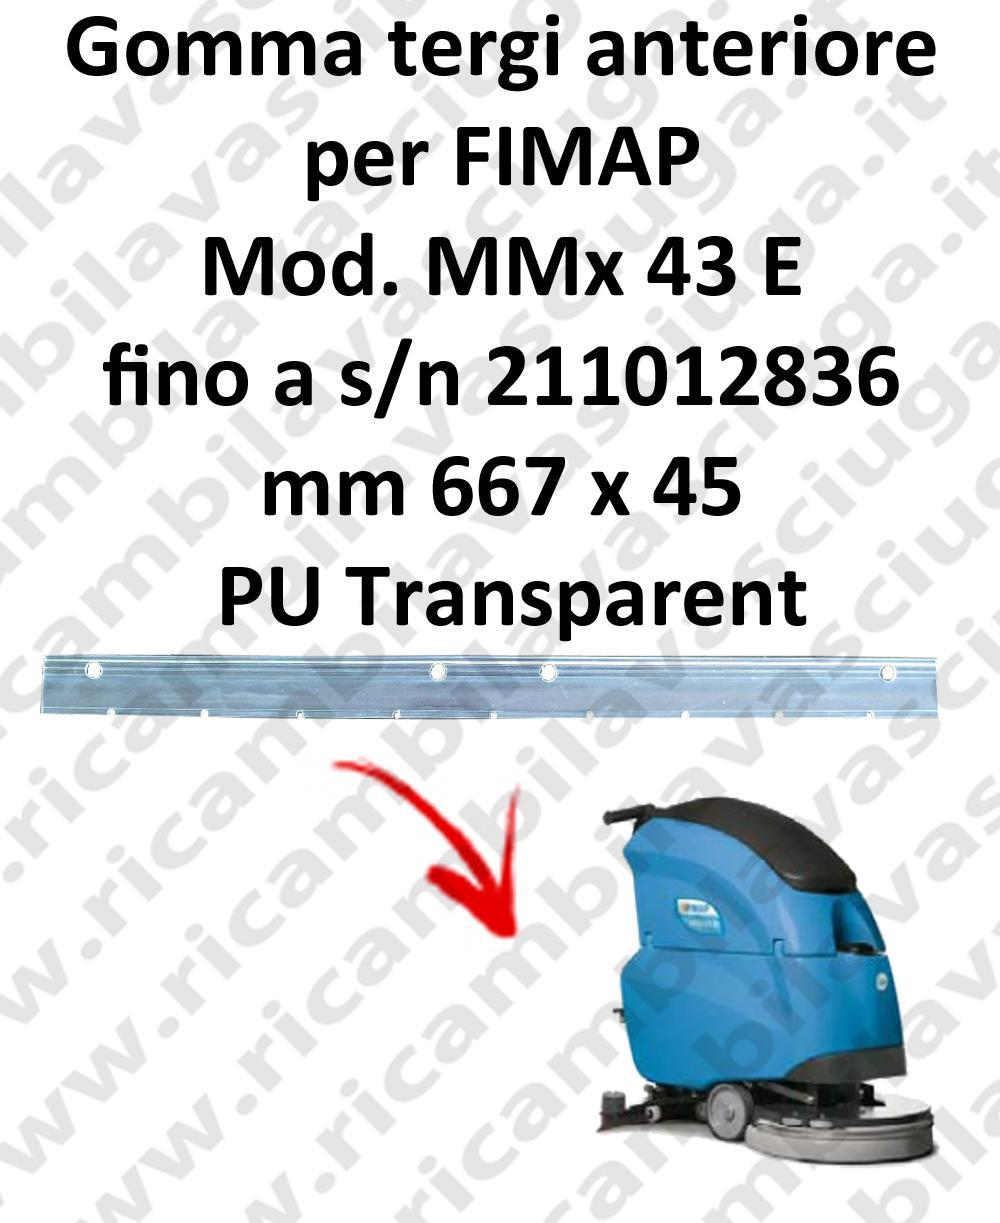 MMx 43 E till s/n 211012836 Front Squeegee rubber for FIMAP accessories, reaplacement, spare parts,o scrubber dryer squeegee